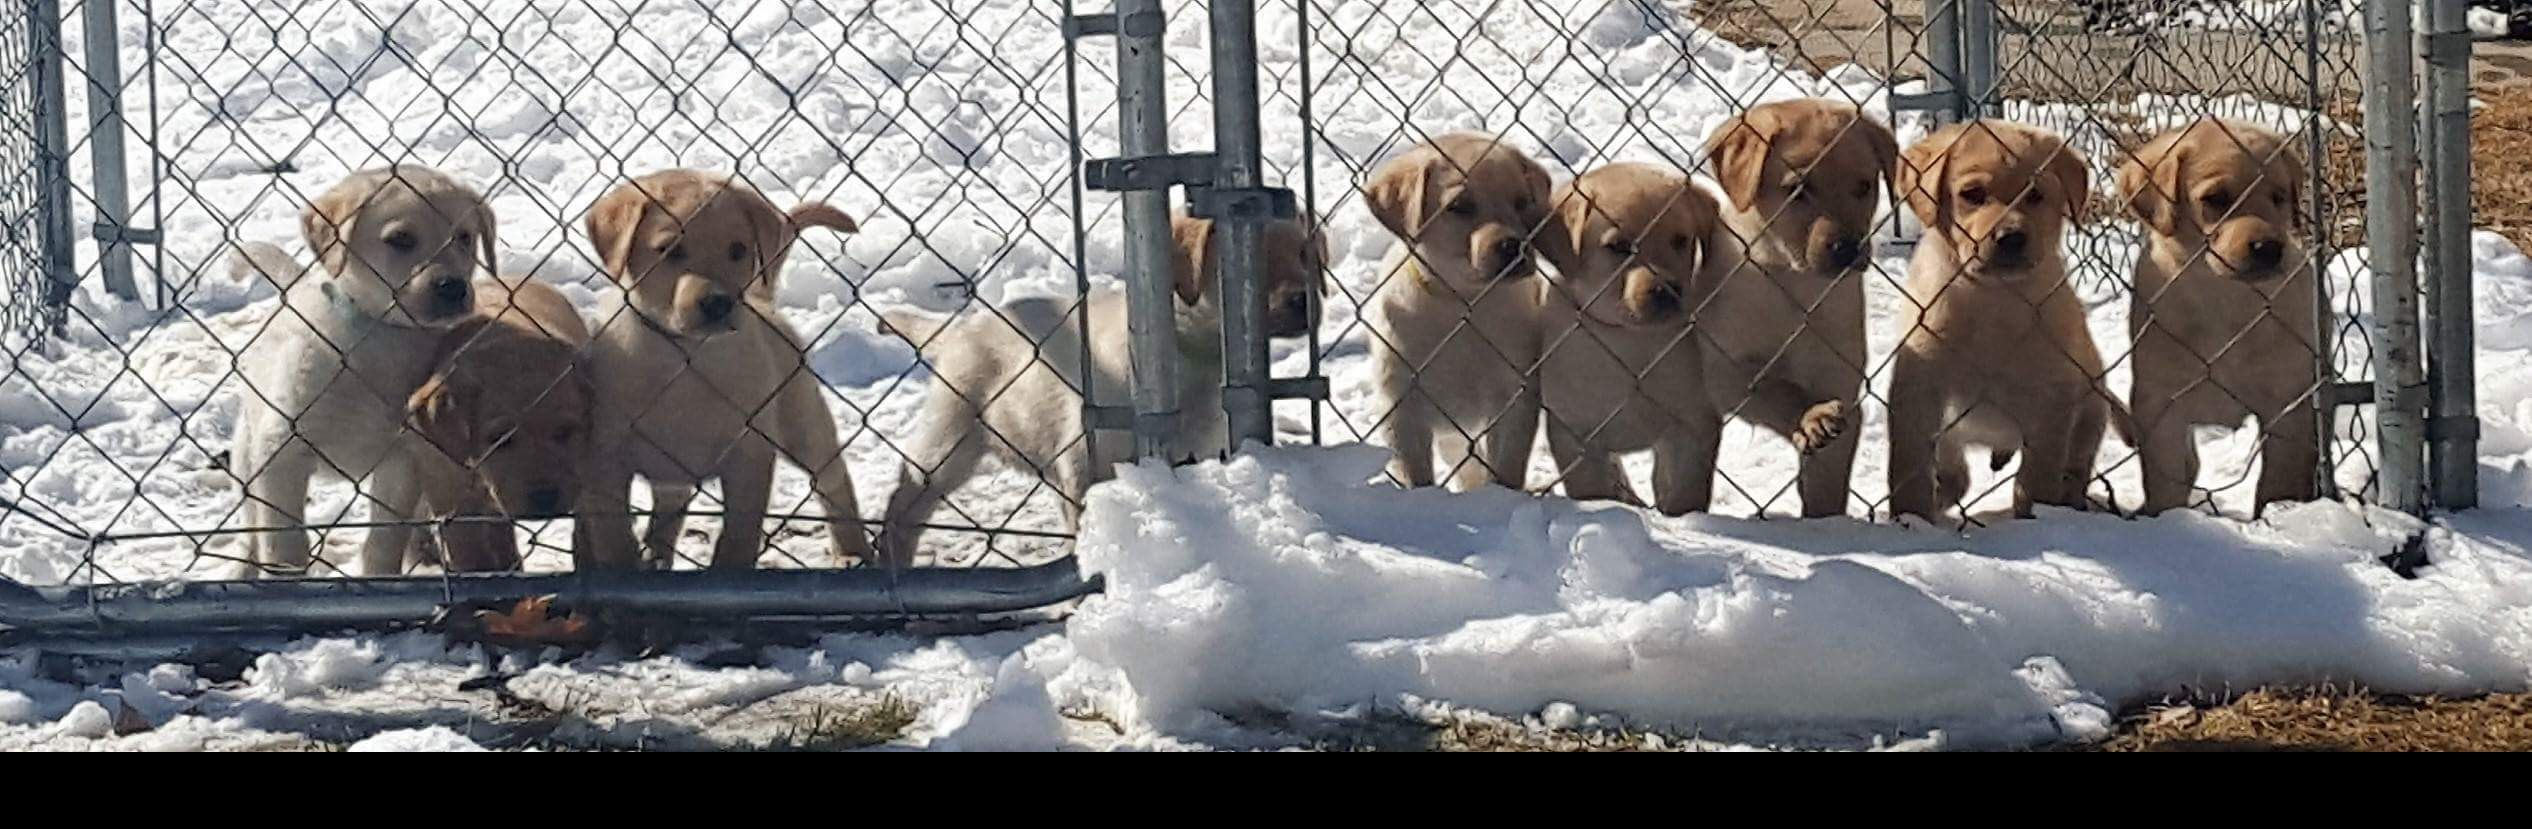 Dogs for Sale - Cooperstown Kennels